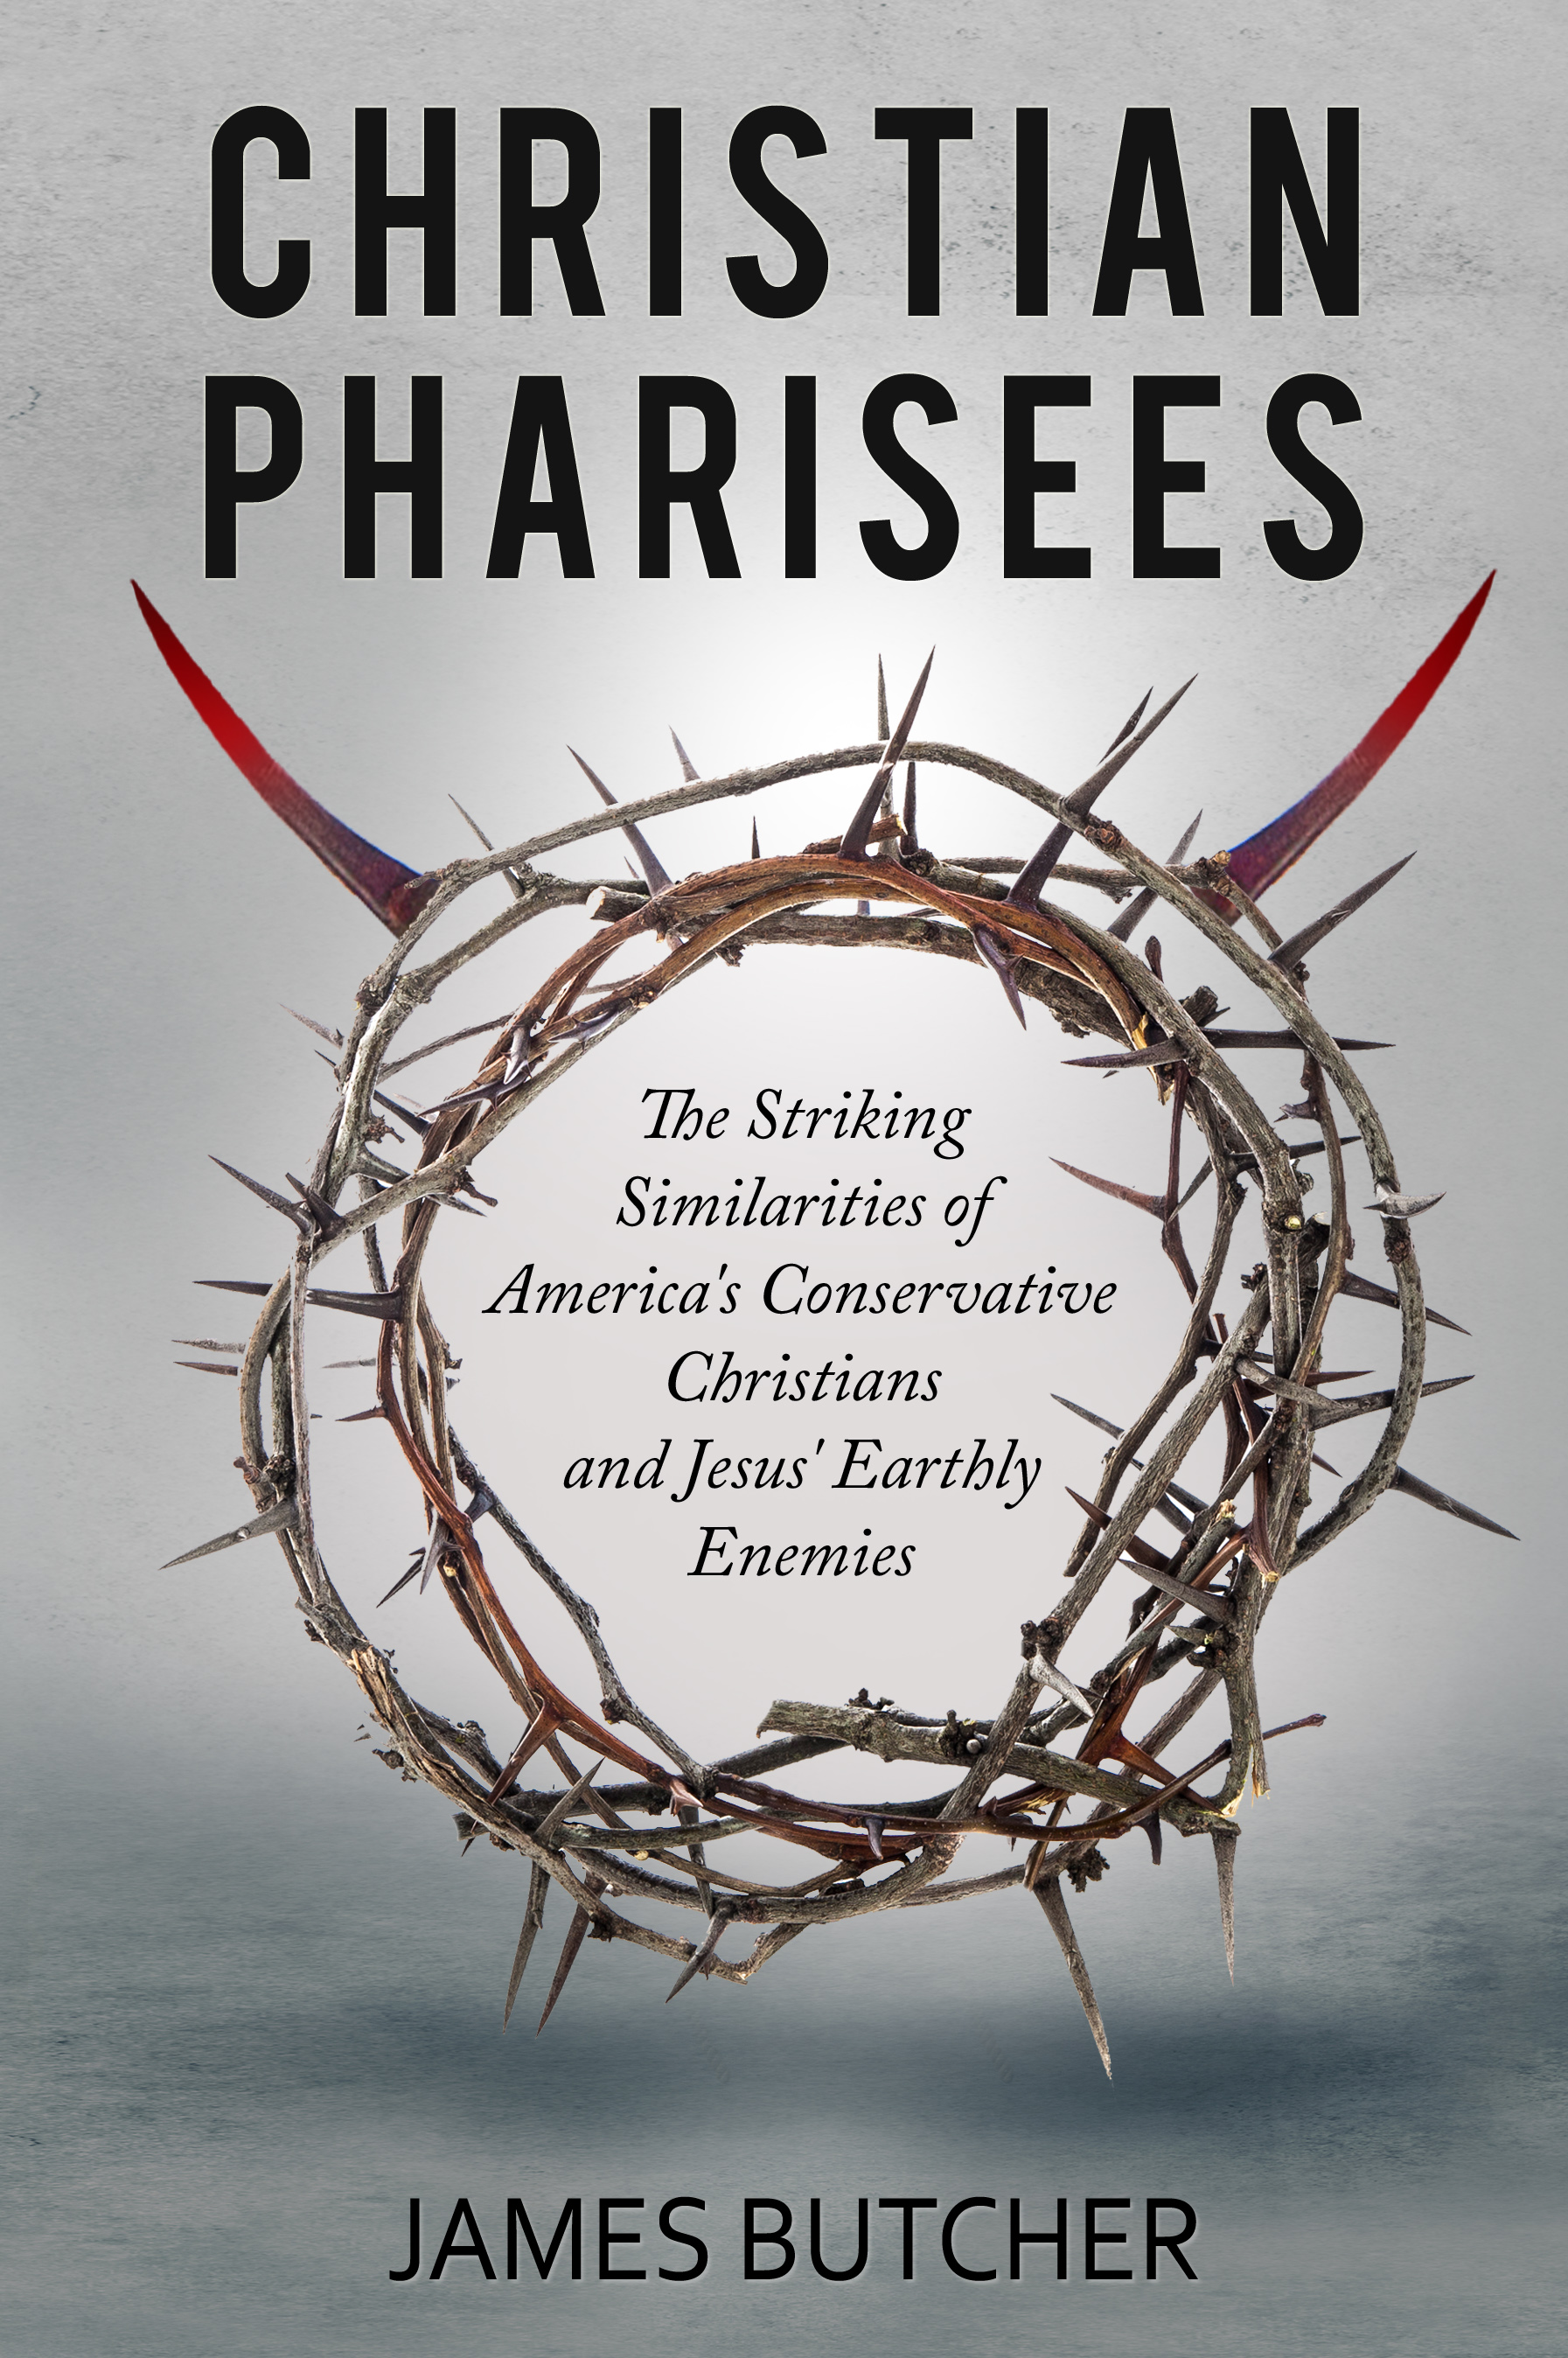 summarize the beliefs of the pharisees